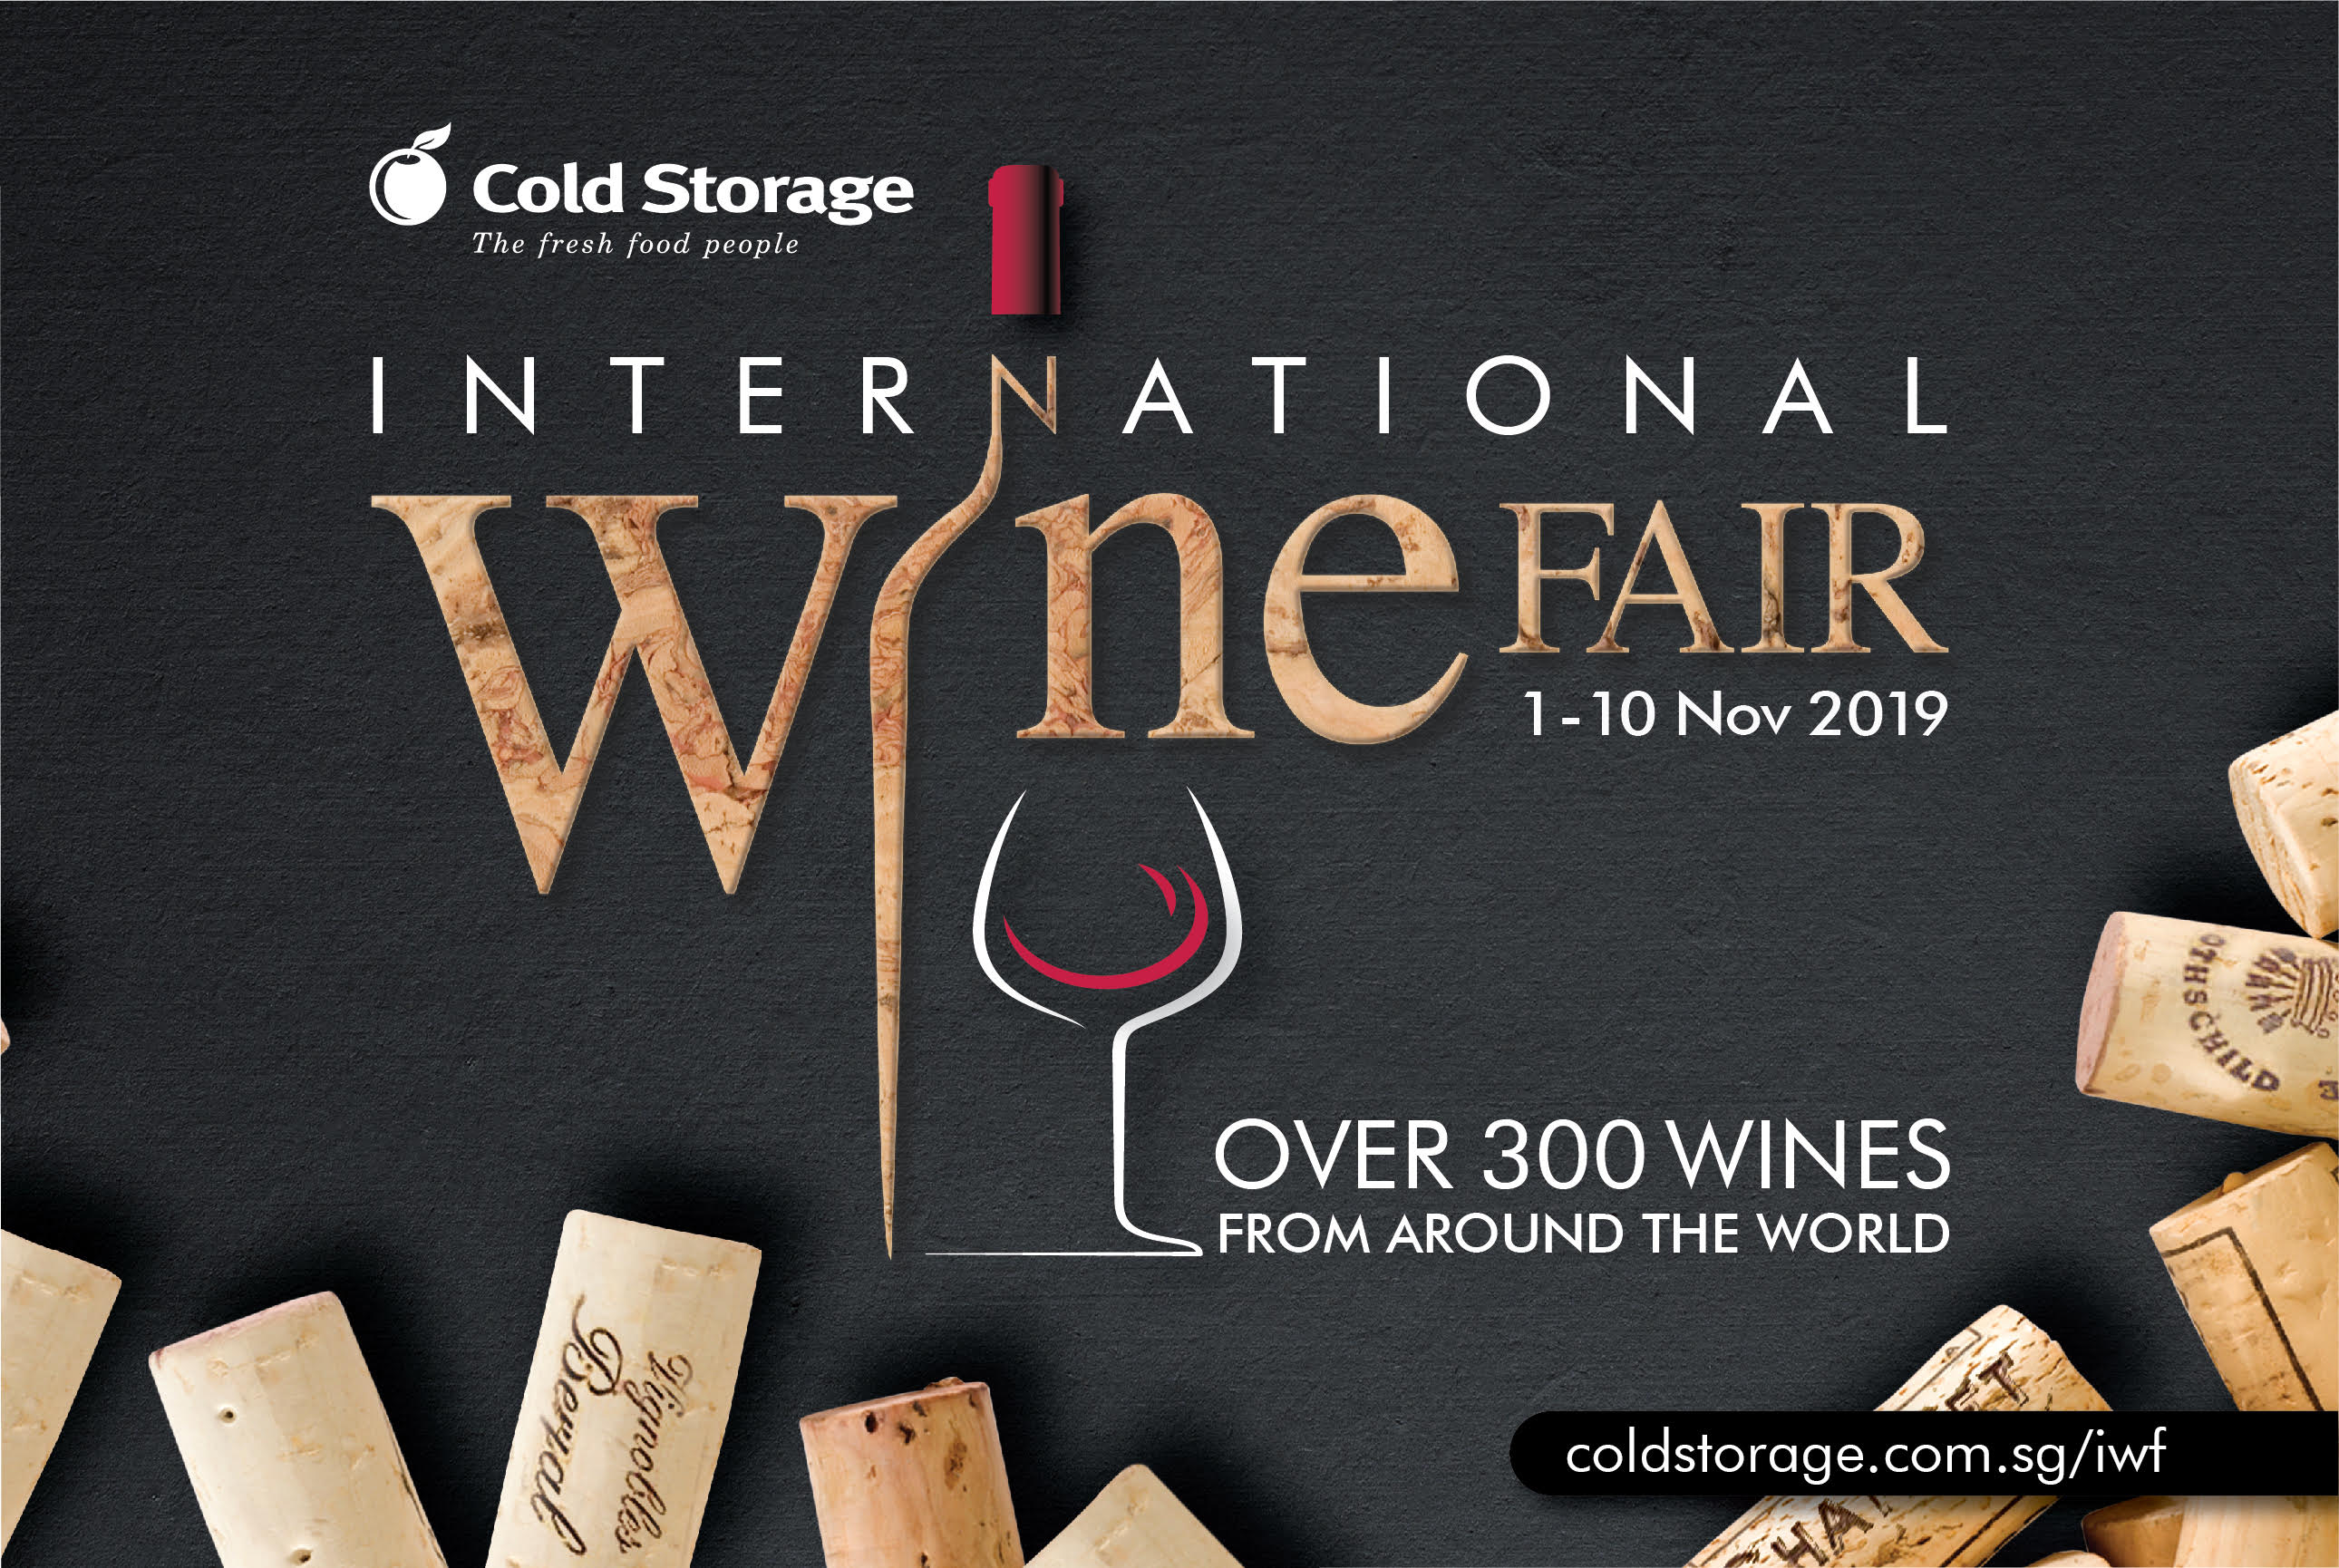 Cold Storage Singapore 12th International Wine Fair More Than 300 Wines From Around The World 1-10 Nov 2019 | Why Not Deals & Promotions